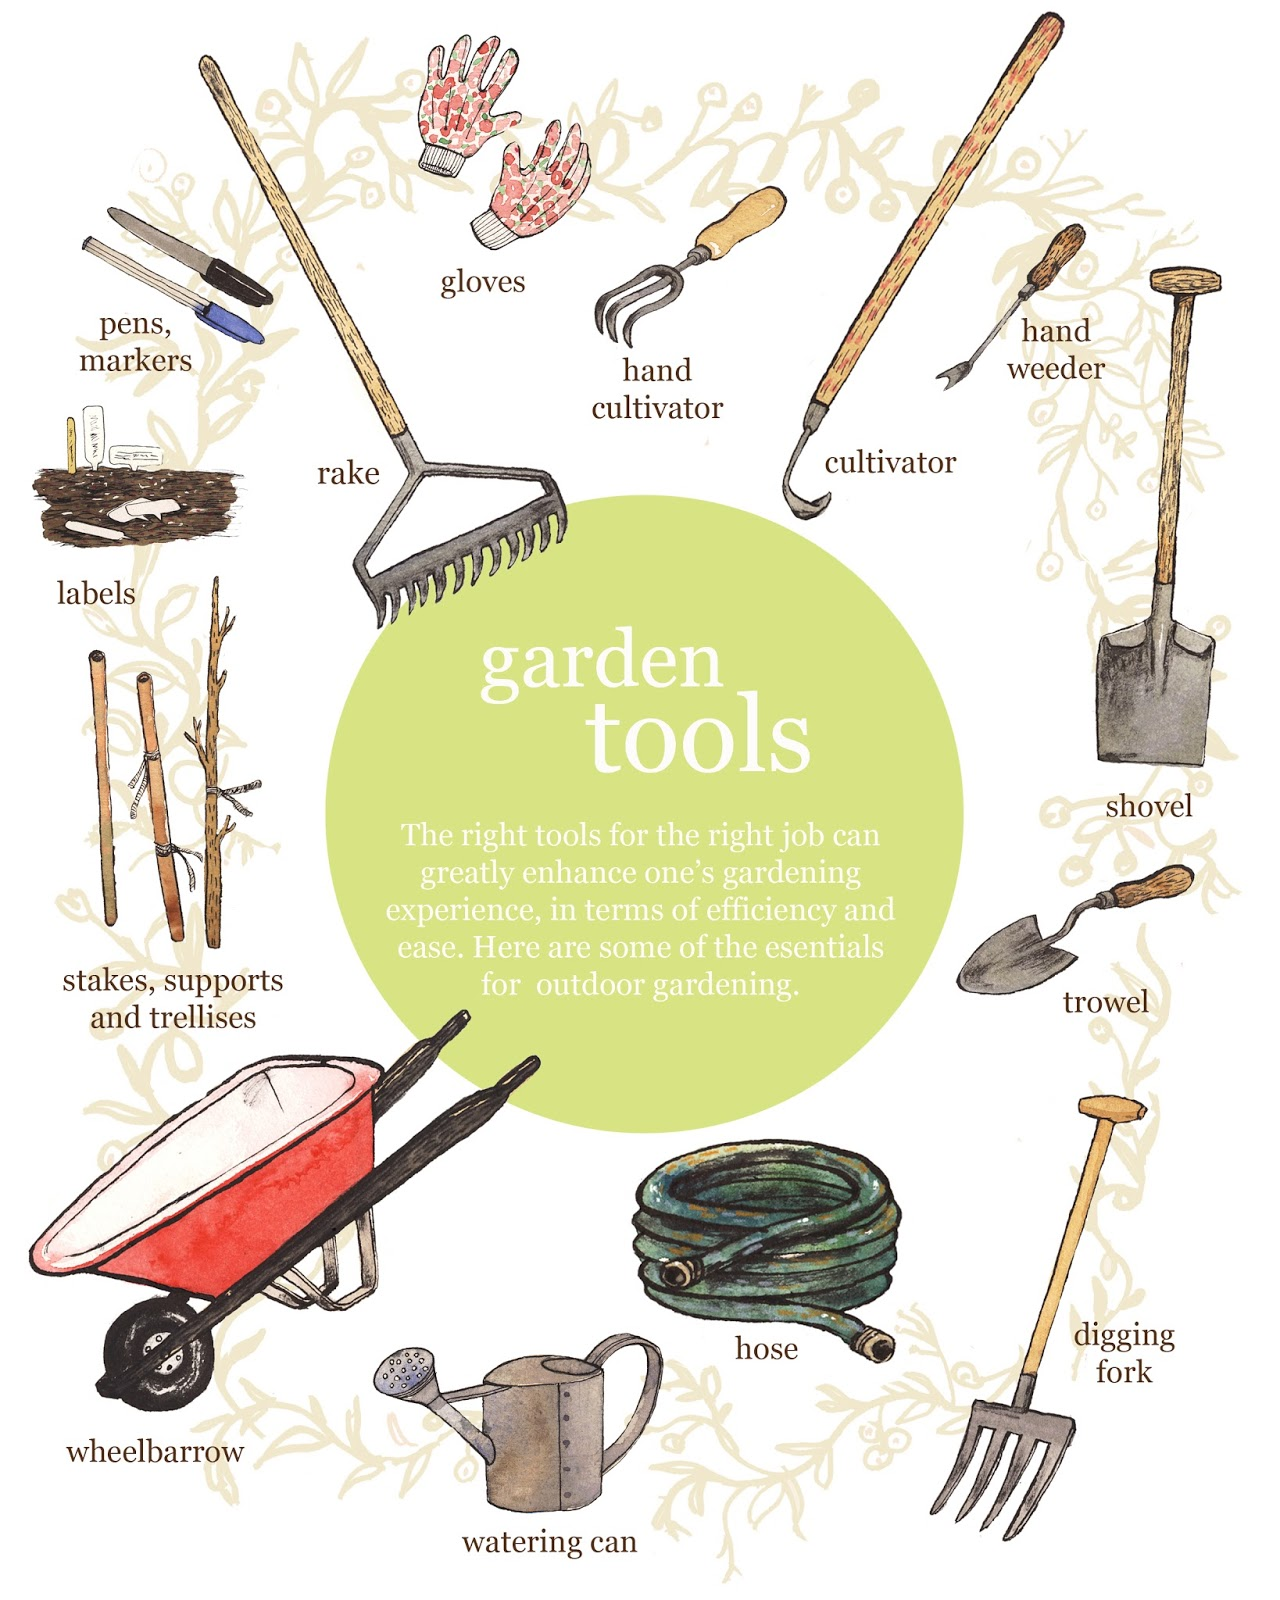 Robin Clugston Gardening Tools And Compost Advice